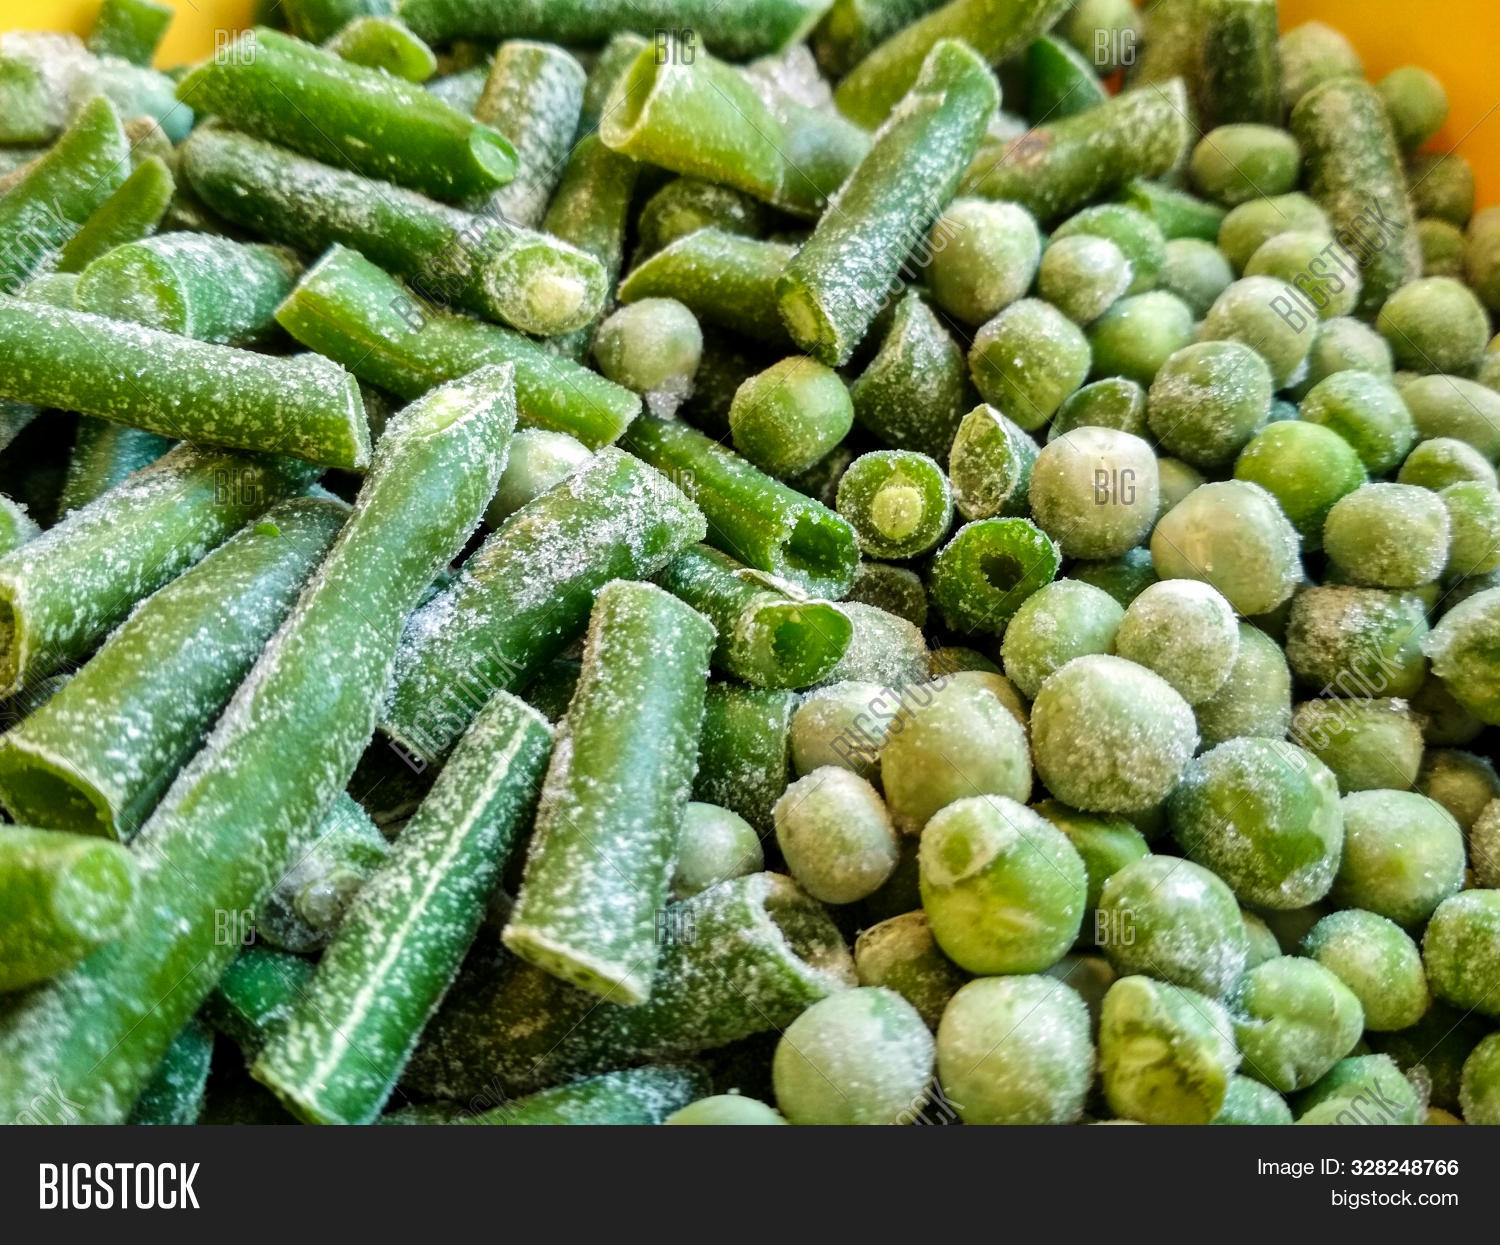 agriculture,background,bean,close,closeup,cold,cooking,cool,cut,dried,eating,food,fresh,freshness,frost,frosty,frozen,green,harvest,health,healthy,ice,iced,ingredient,isolated,legume,light,macro,market,mix,natural,nature,nutrition,organic,pea,plant,raw,sliced,stack,supermarket,tasty,vegan,vegetable,vegetarian,vitamin,water